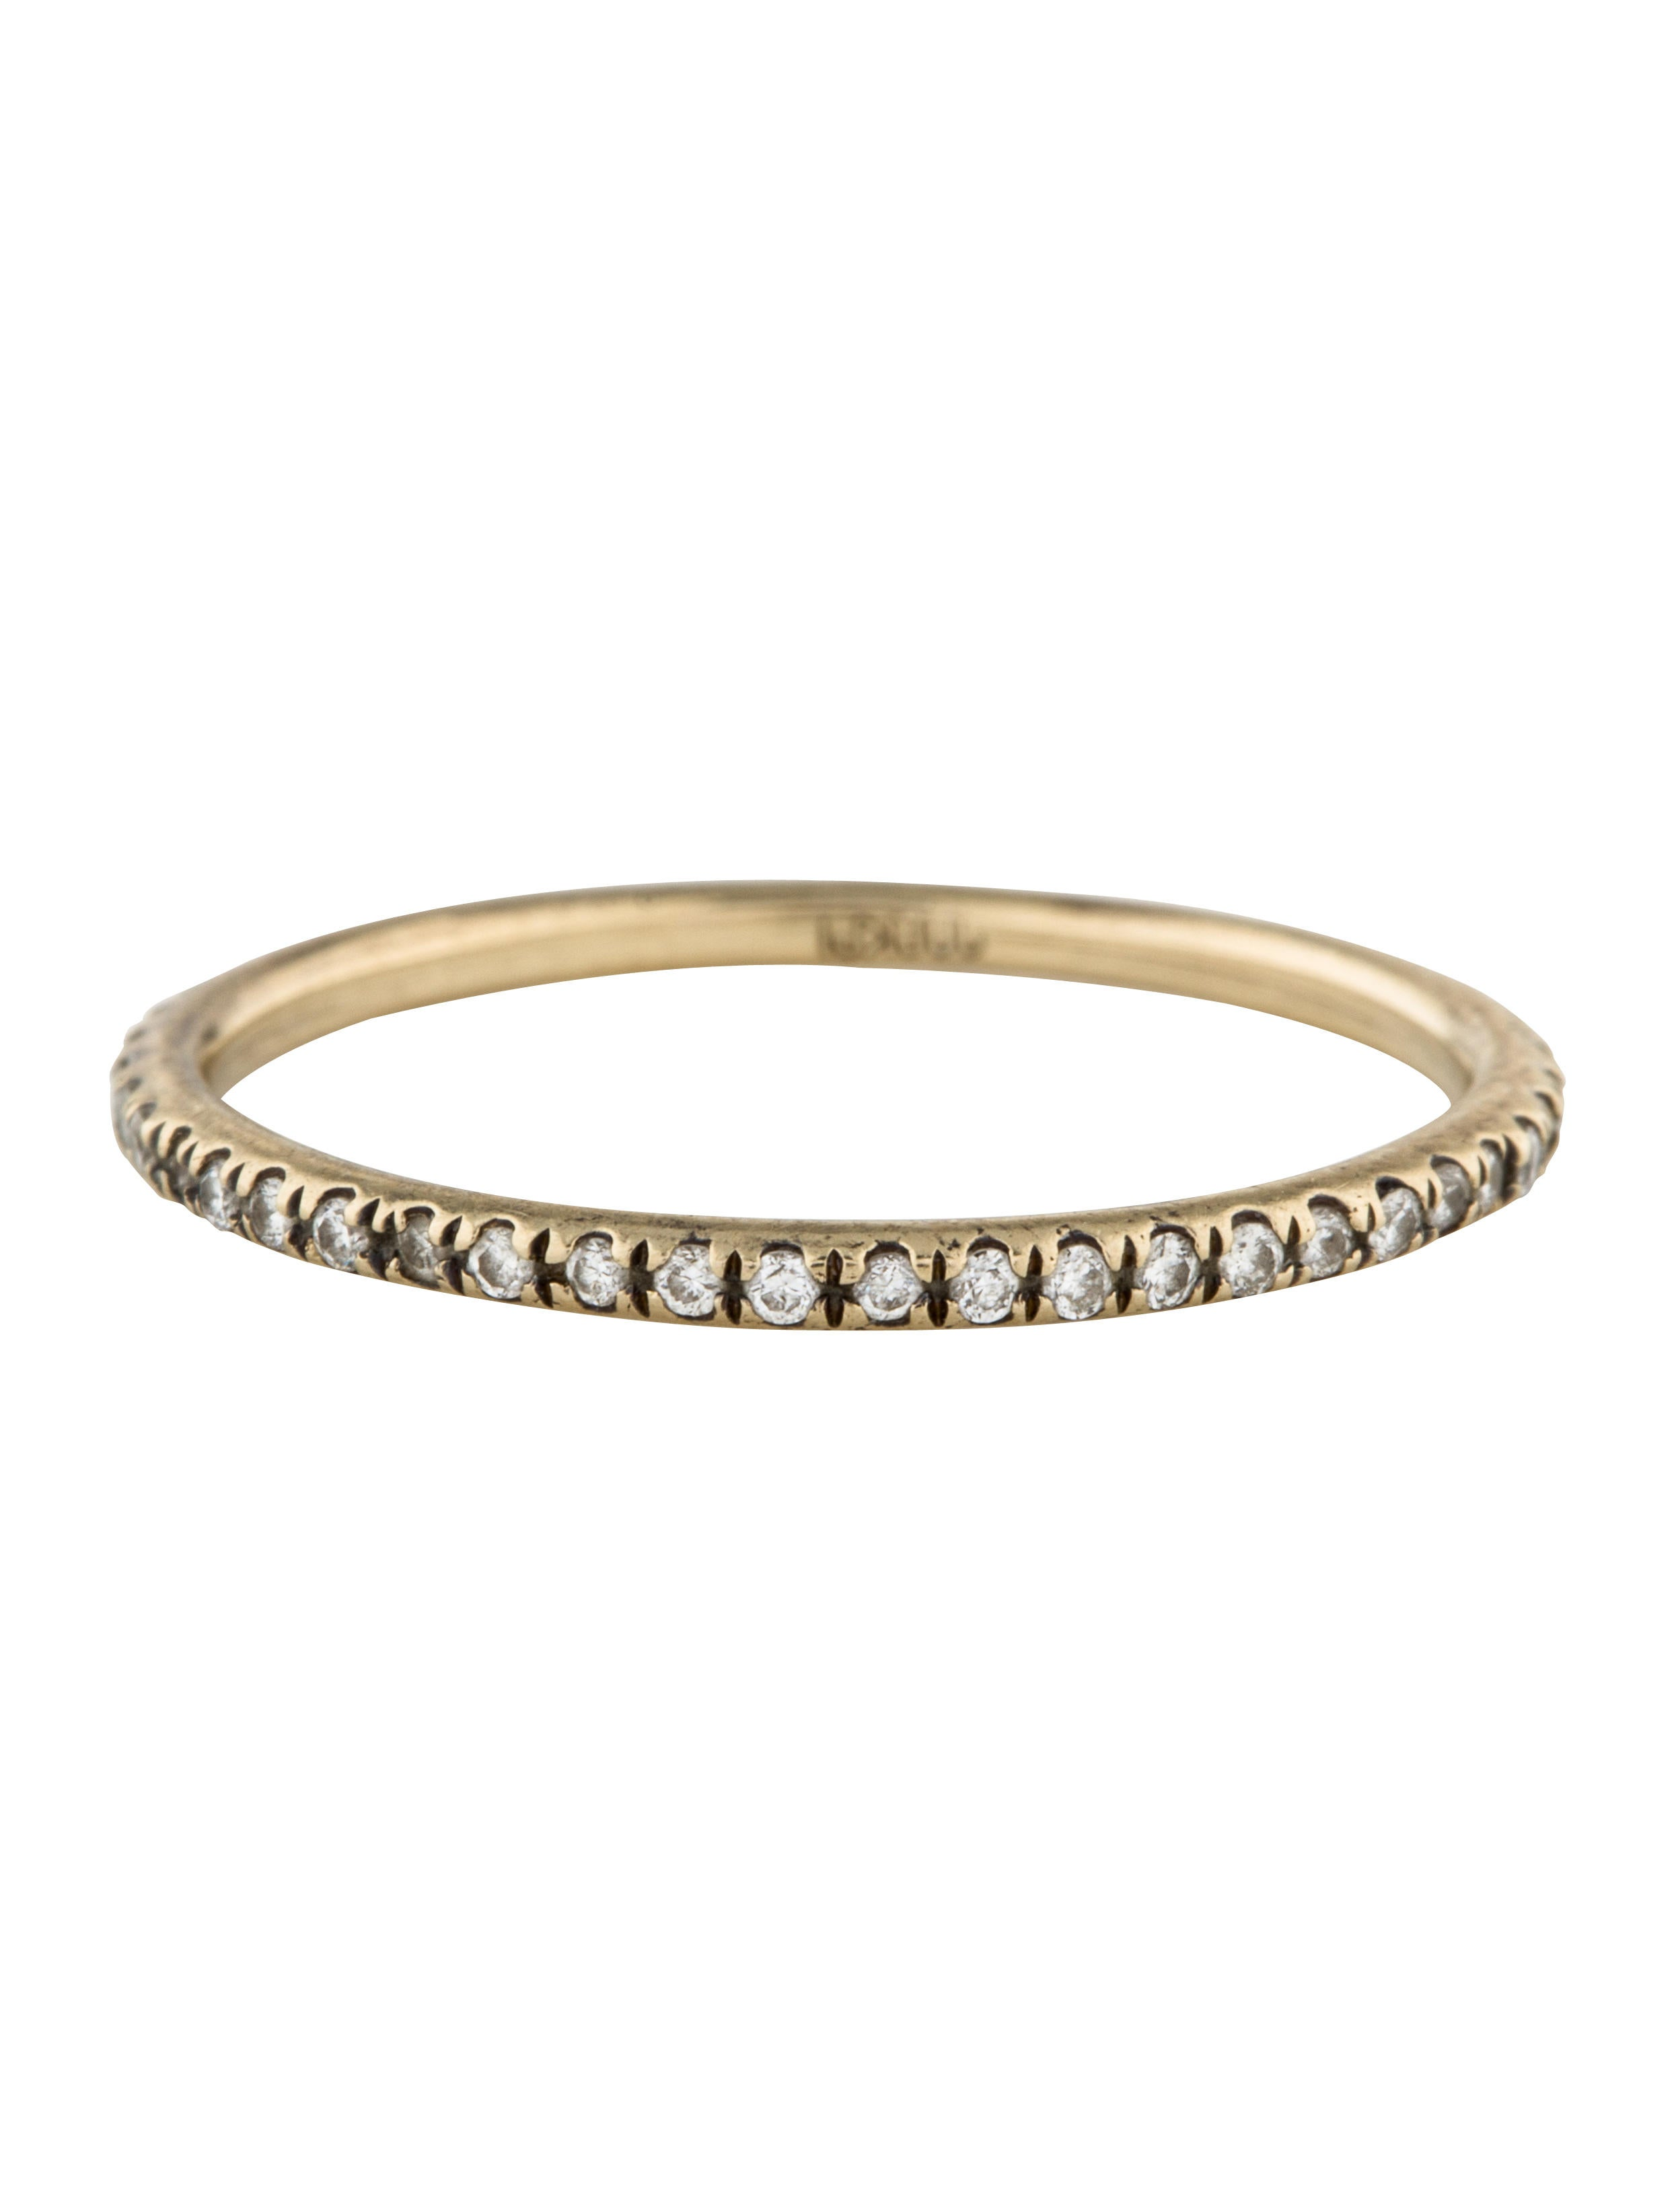 Ileana Makri Thread Band diamond ring - Unavailable etNycn4